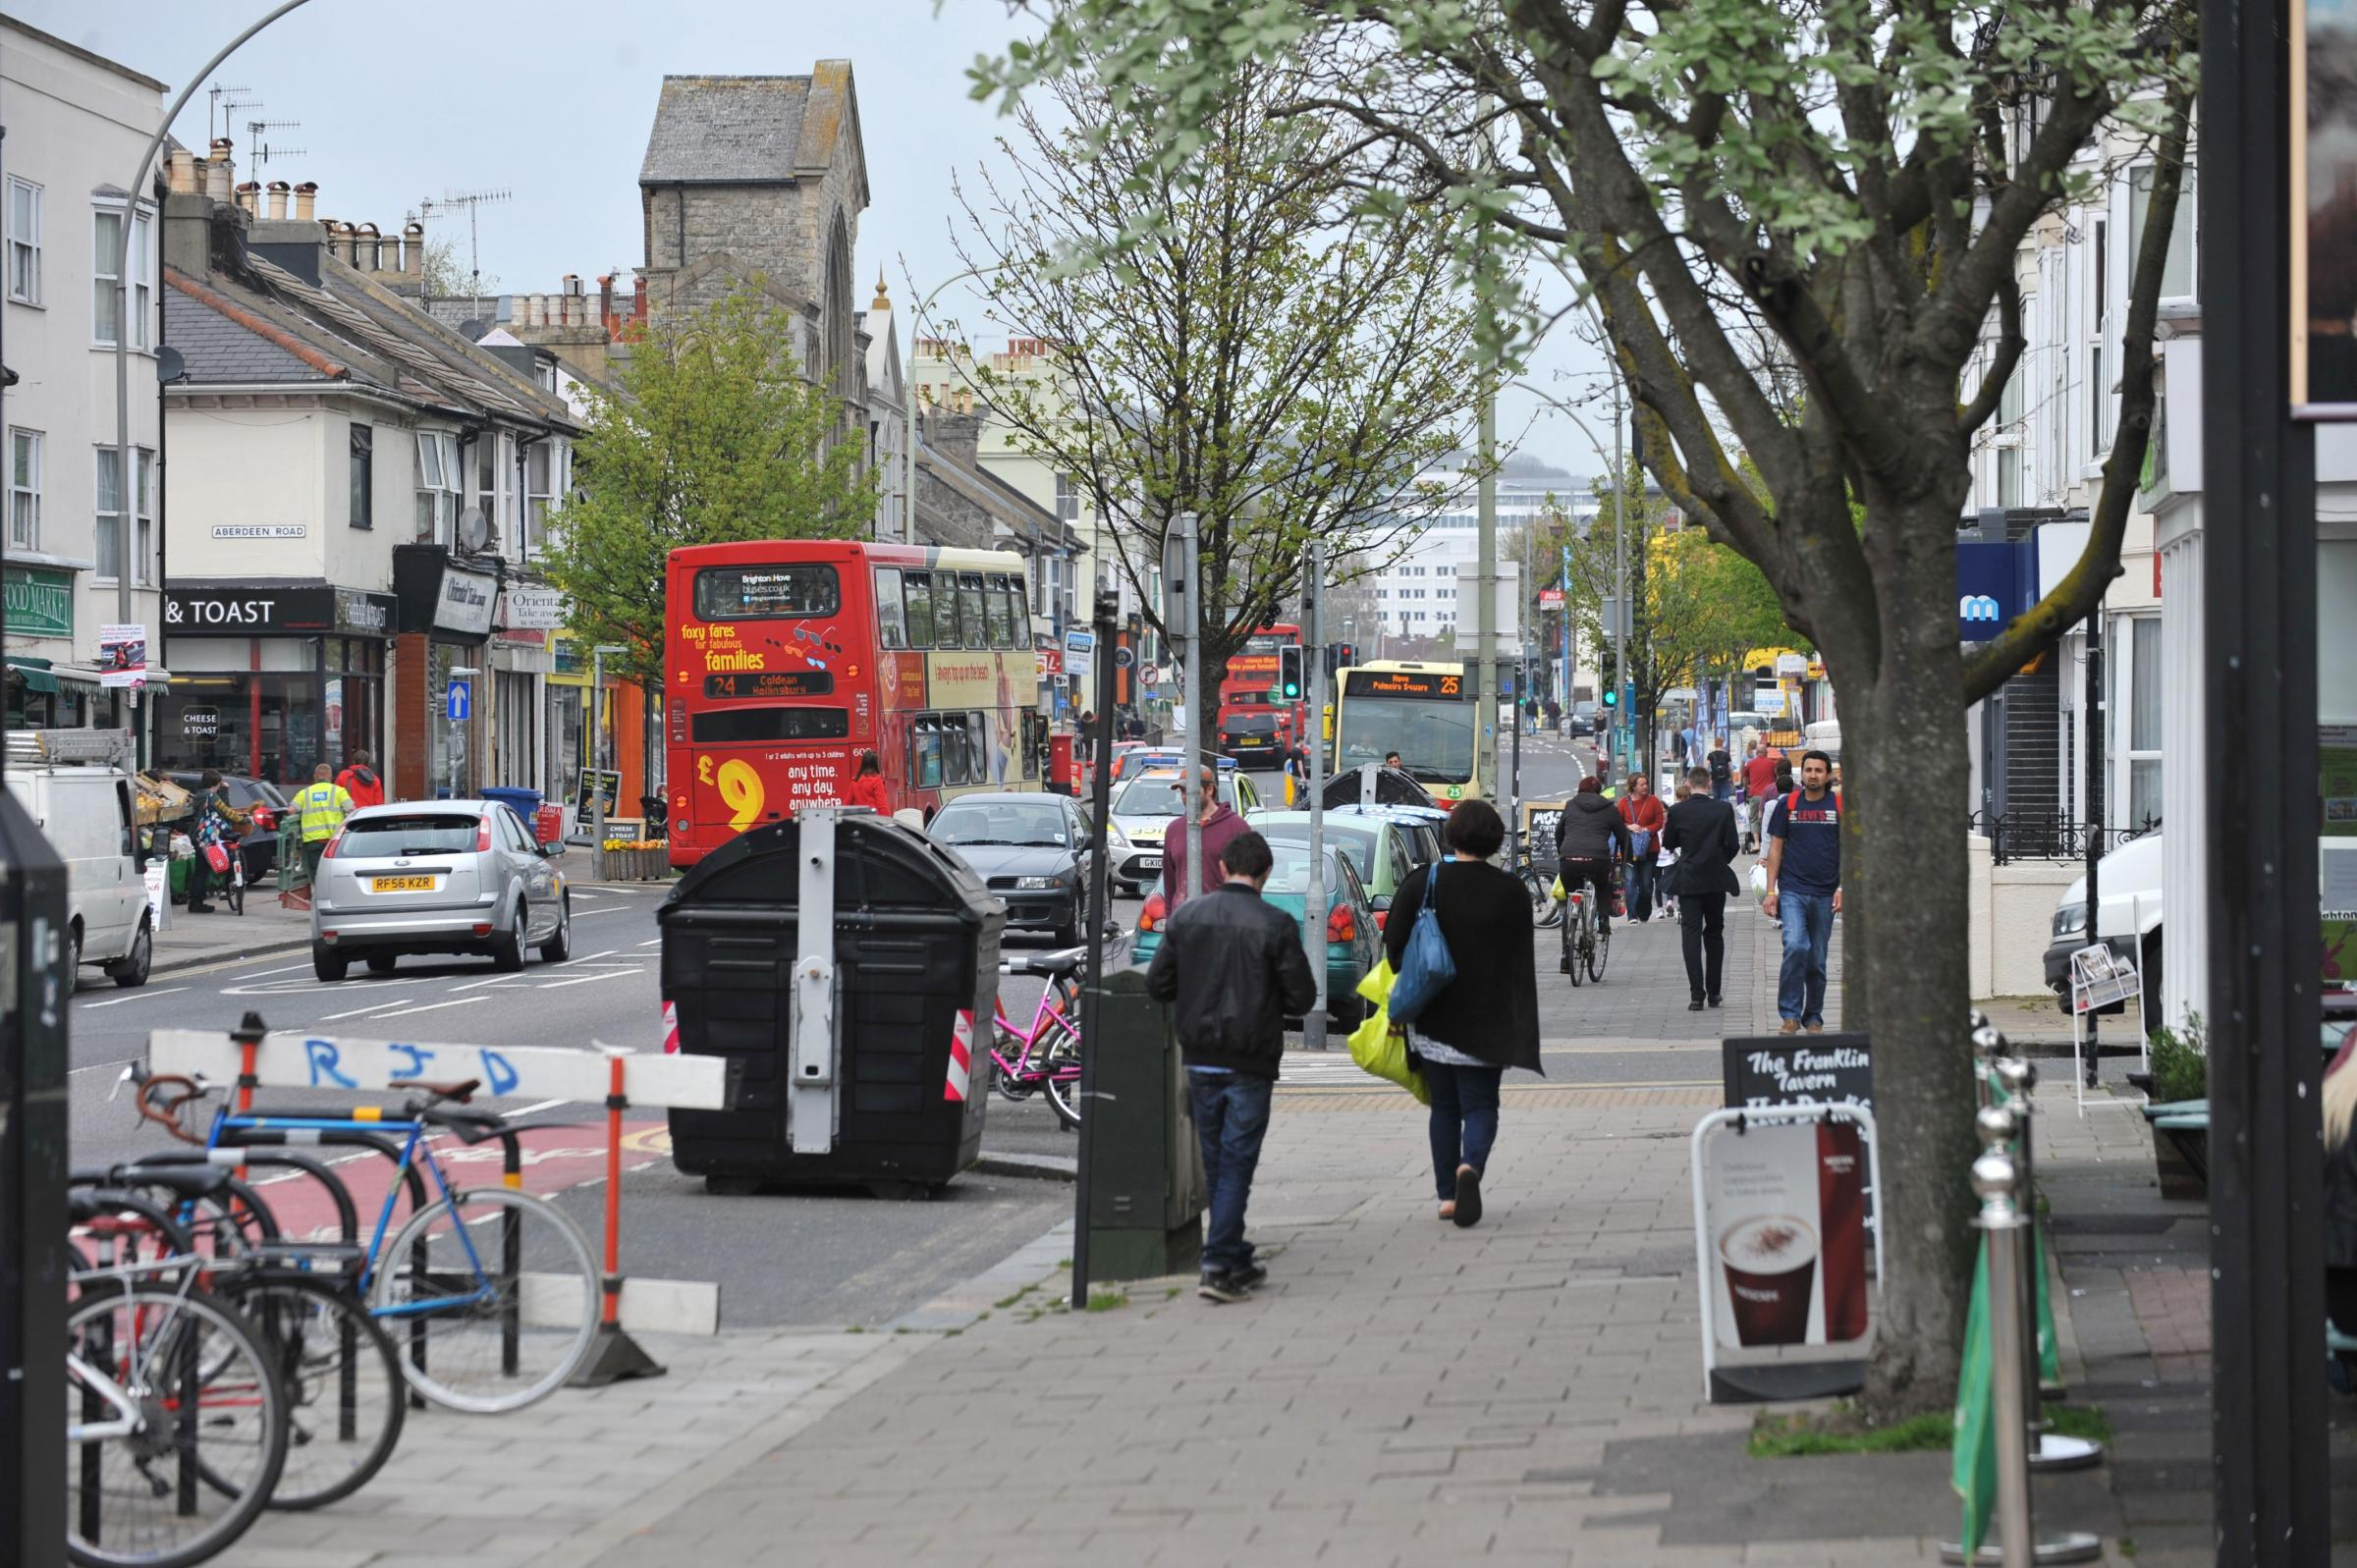 Parking restrictions will 'damage trade'